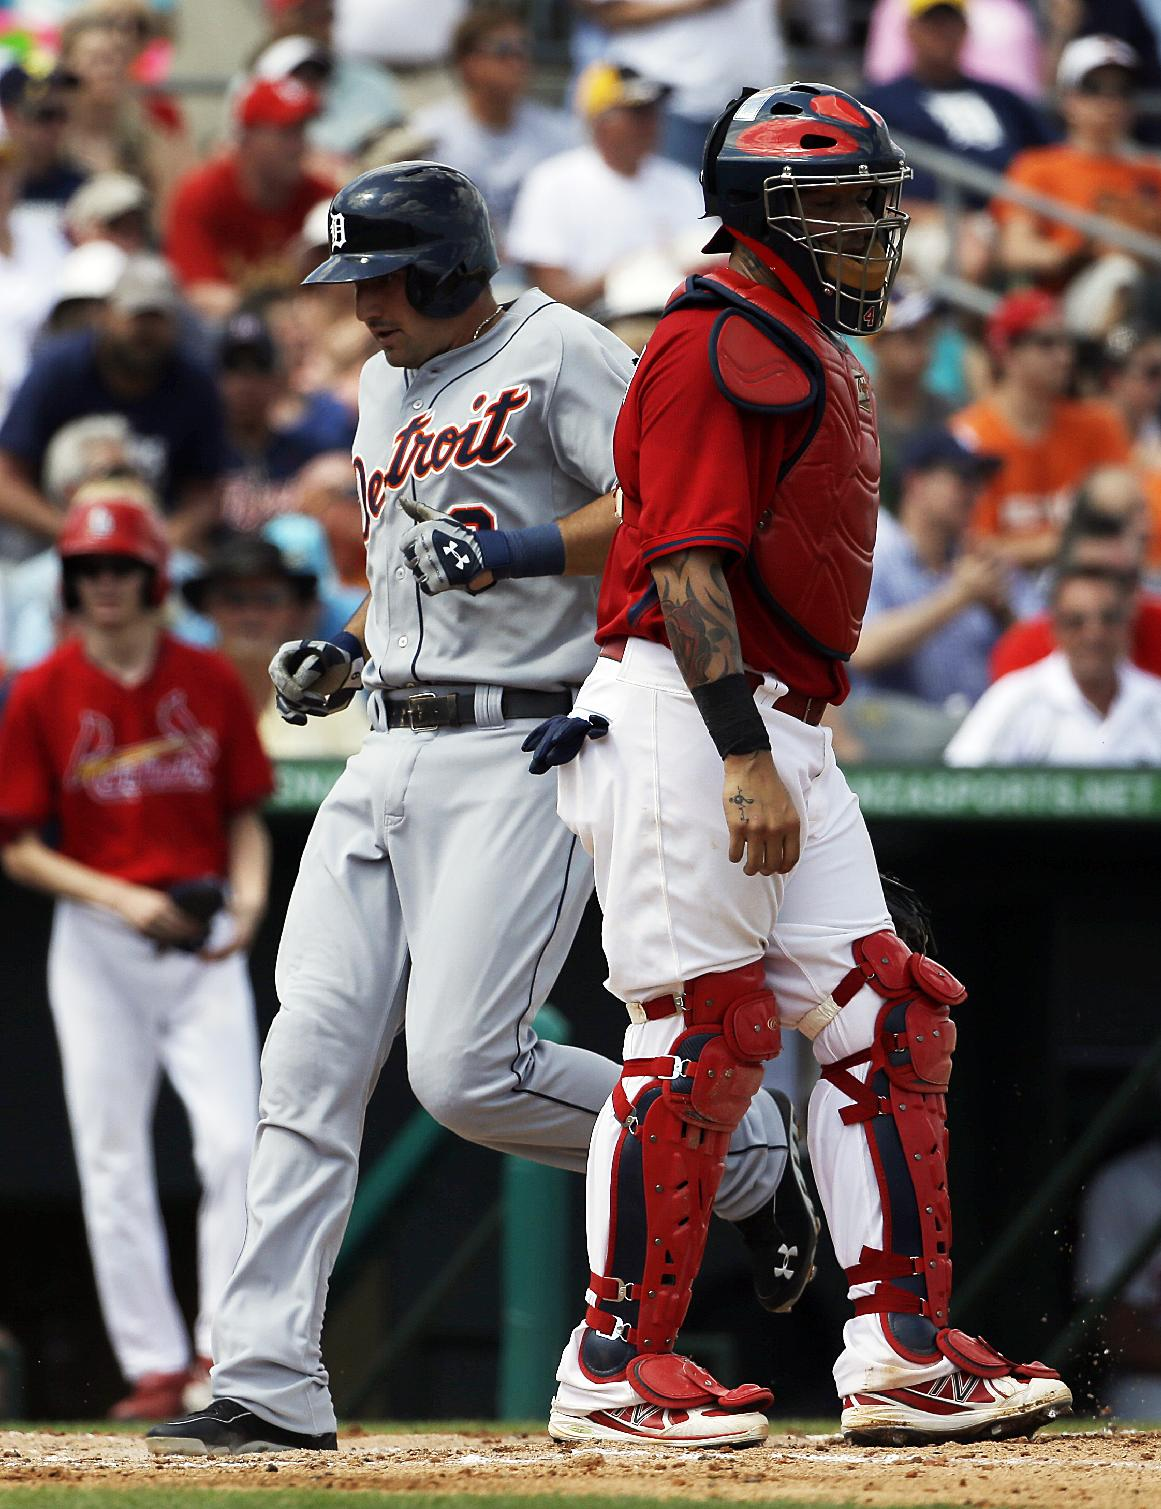 Detroit Tigers' Nick Castellanos, left scores off a triple by teammate Steven Moya as St. Louis Cardinals catcher Yadier Molina, right, looks on in the third inning of an exhibition spring training baseball game, Monday, March 10, 2014, in Jupiter, Fla